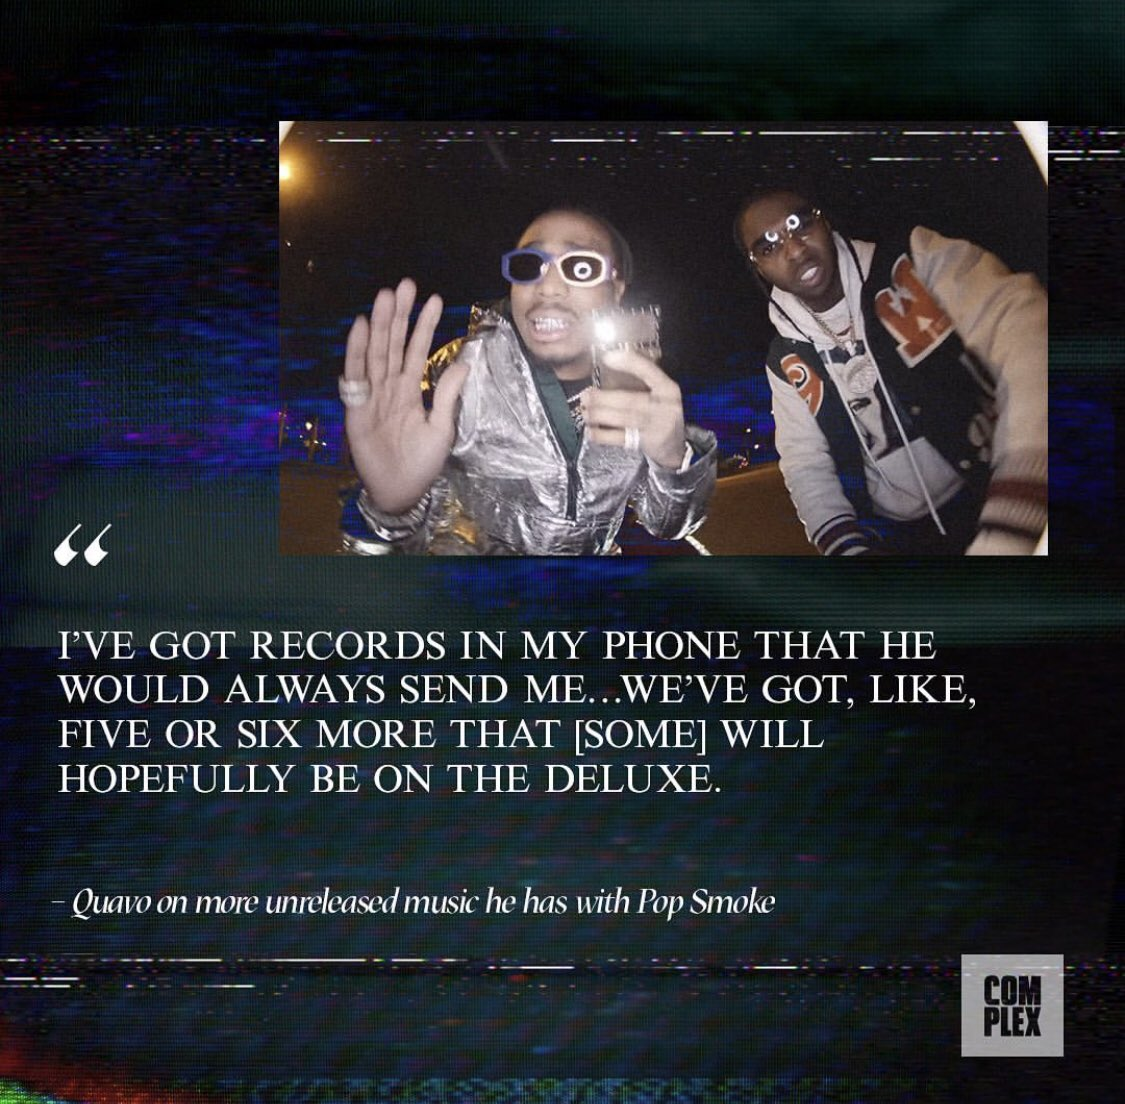 Quavo told me he has five or six more songs with Pop Smoke on the way  https://t.co/ng5rPIgmfT https://t.co/TxyBFB8mwp